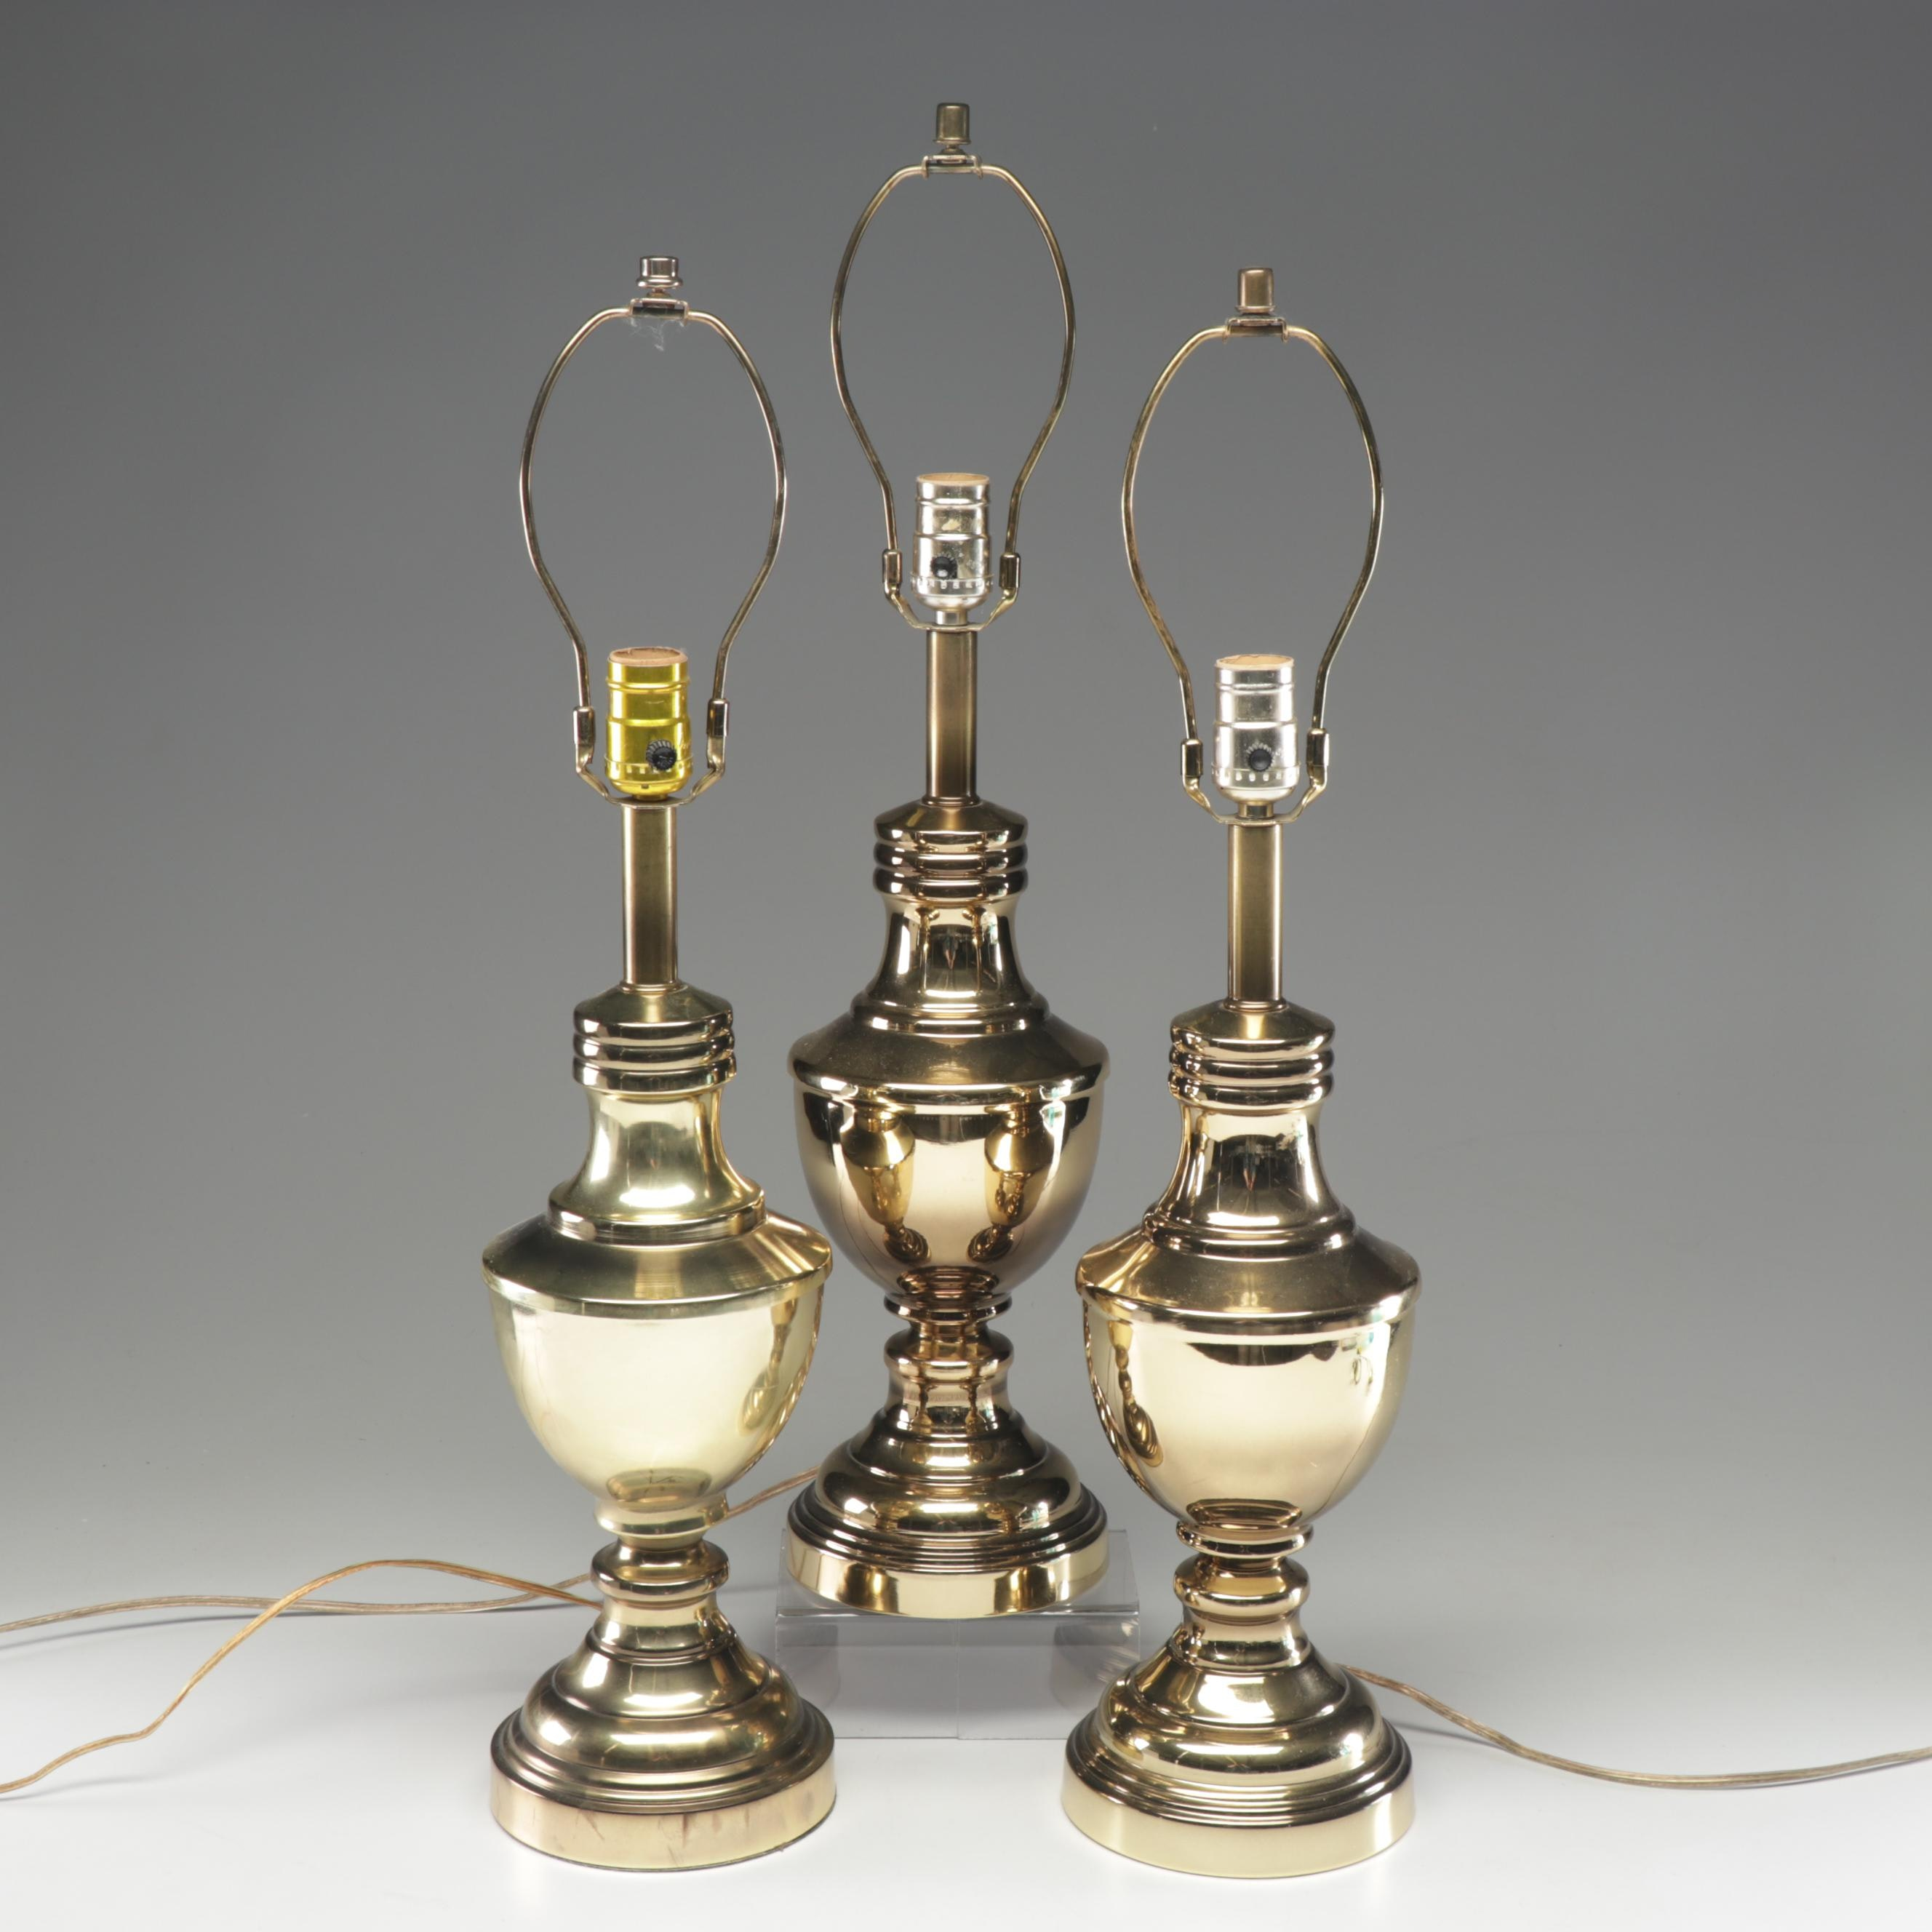 Three Brass Tone Metal Table Lamps